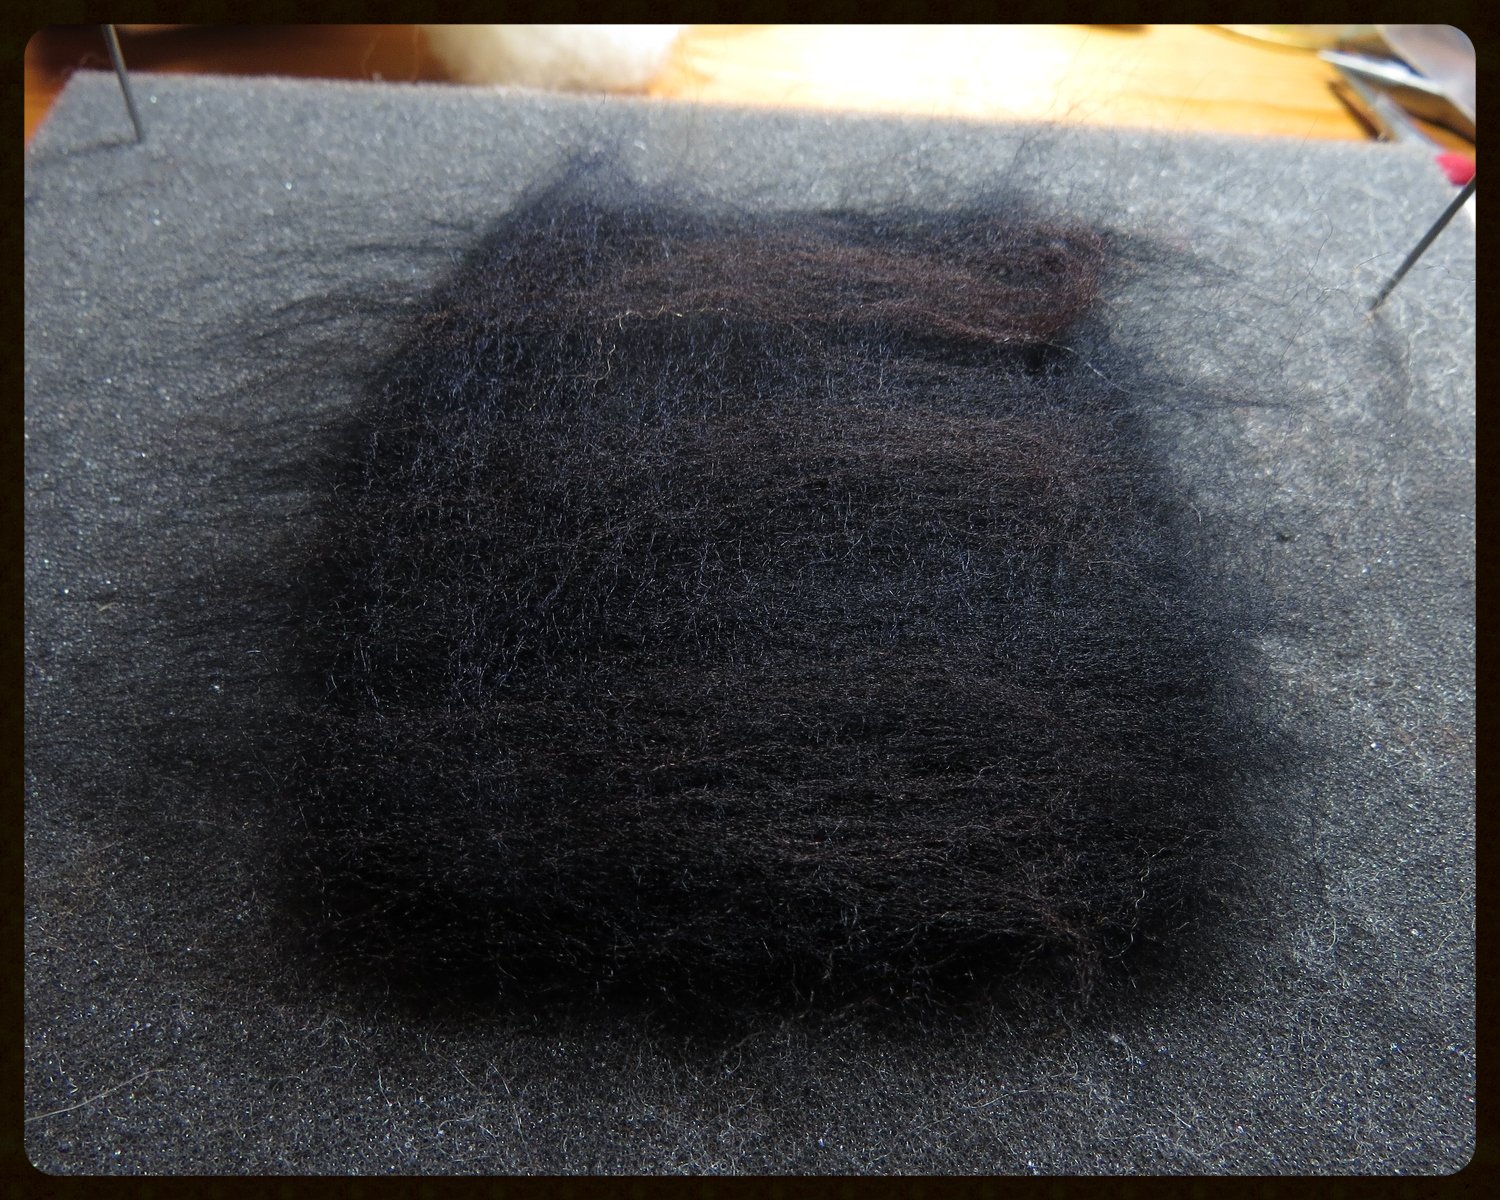 5. When I needlefelt black creatures, I like to add a little dark-colored woolto the black. It makes the finished black color a little less dull-looking. Here, I added some dark chocolate brown and a little navy blue.